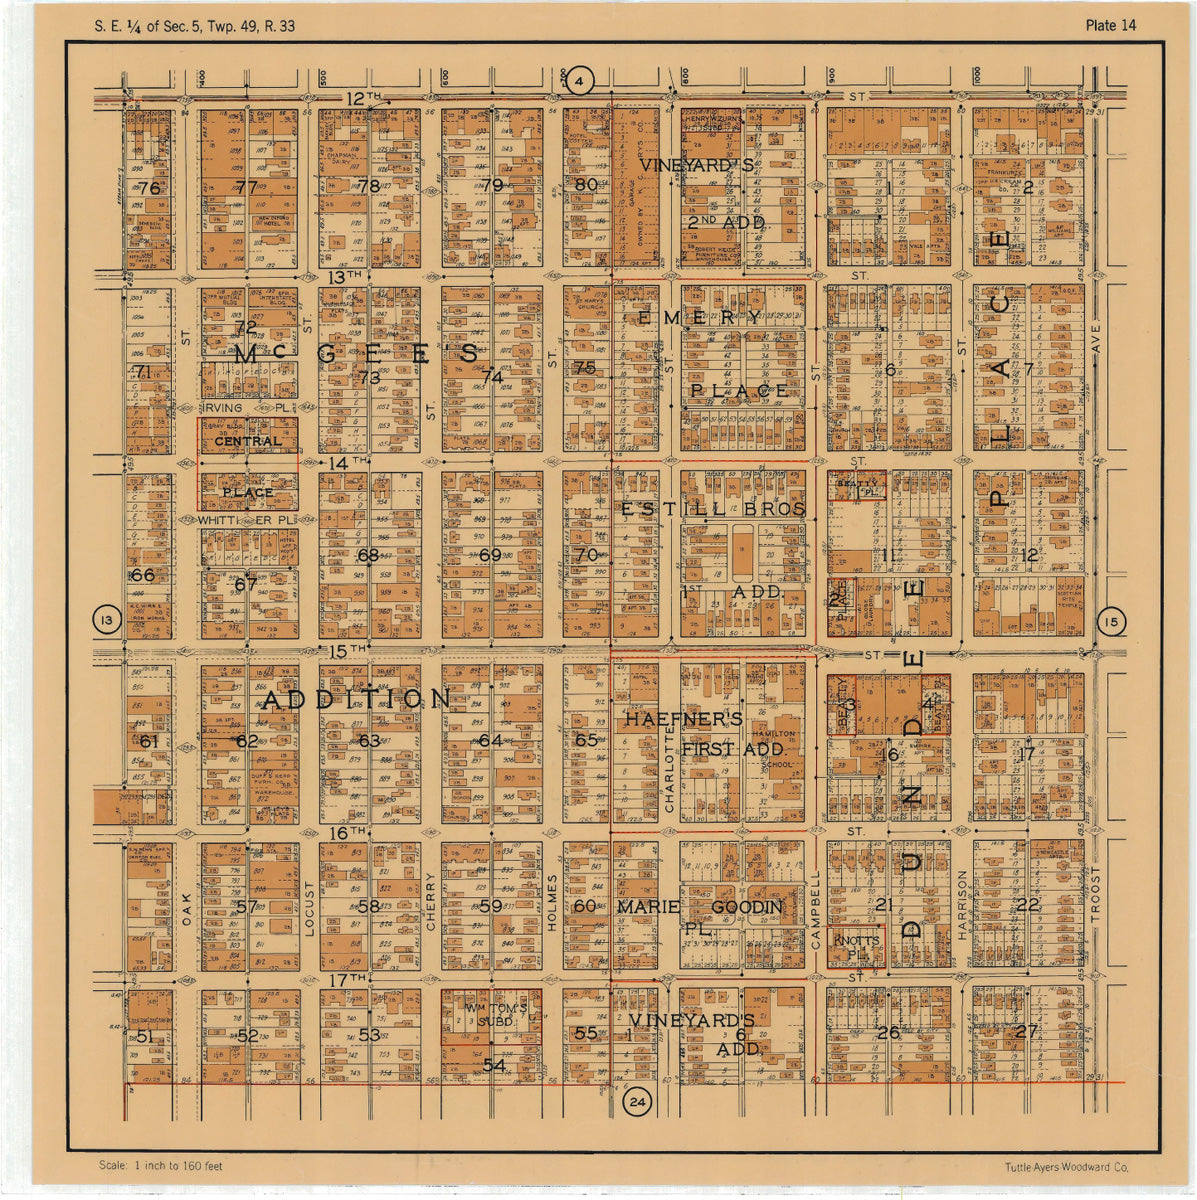 Kansas City 1925 Neighborhood Map - Plate #14 12th-17th Oak-Troost